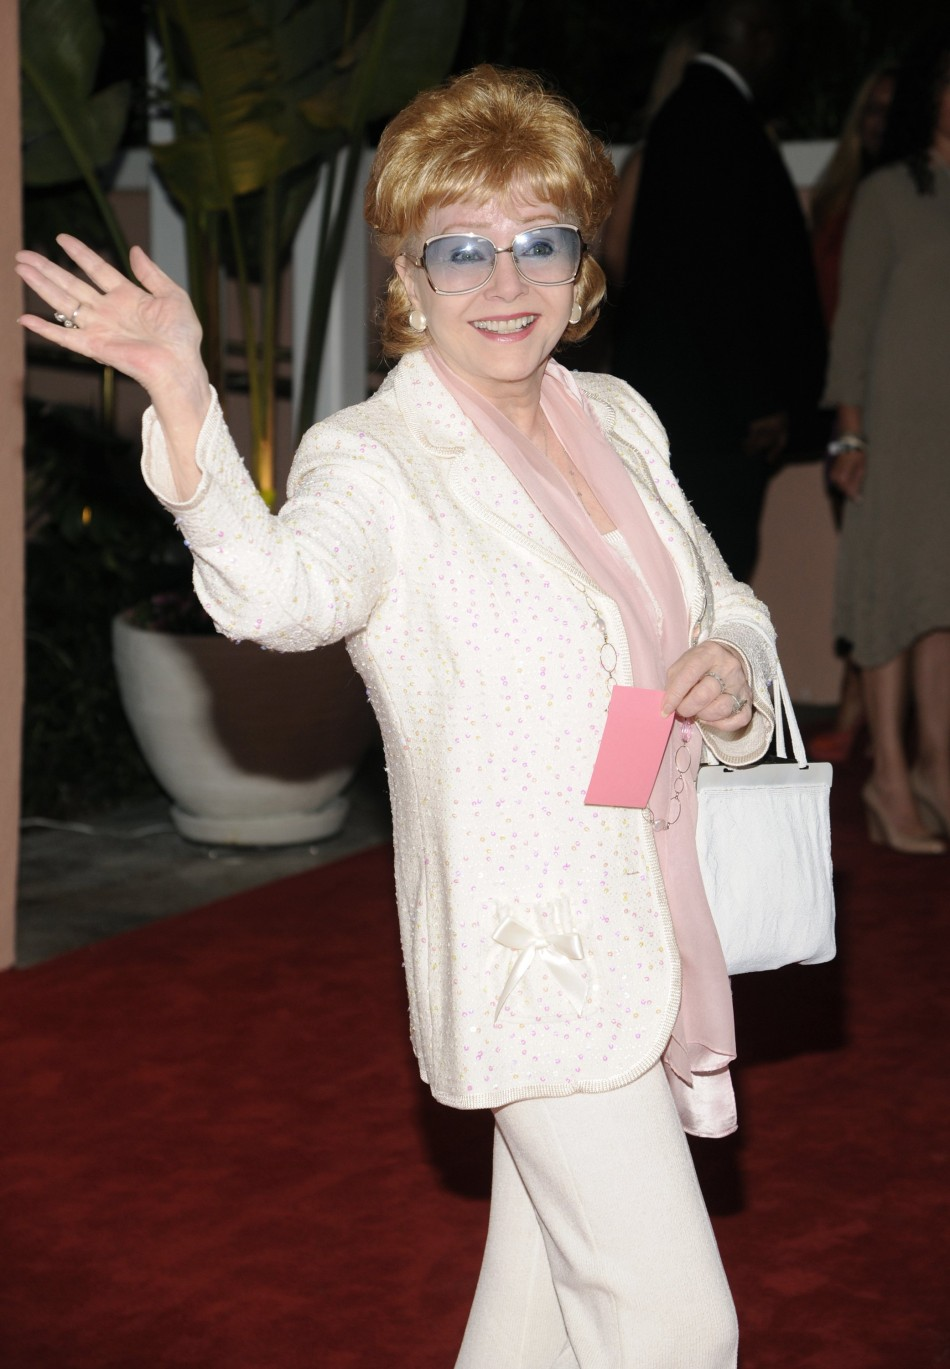 Debbie Reynolds attends the 100th anniversary of The Beverly Hills Hotel in Beverly Hills